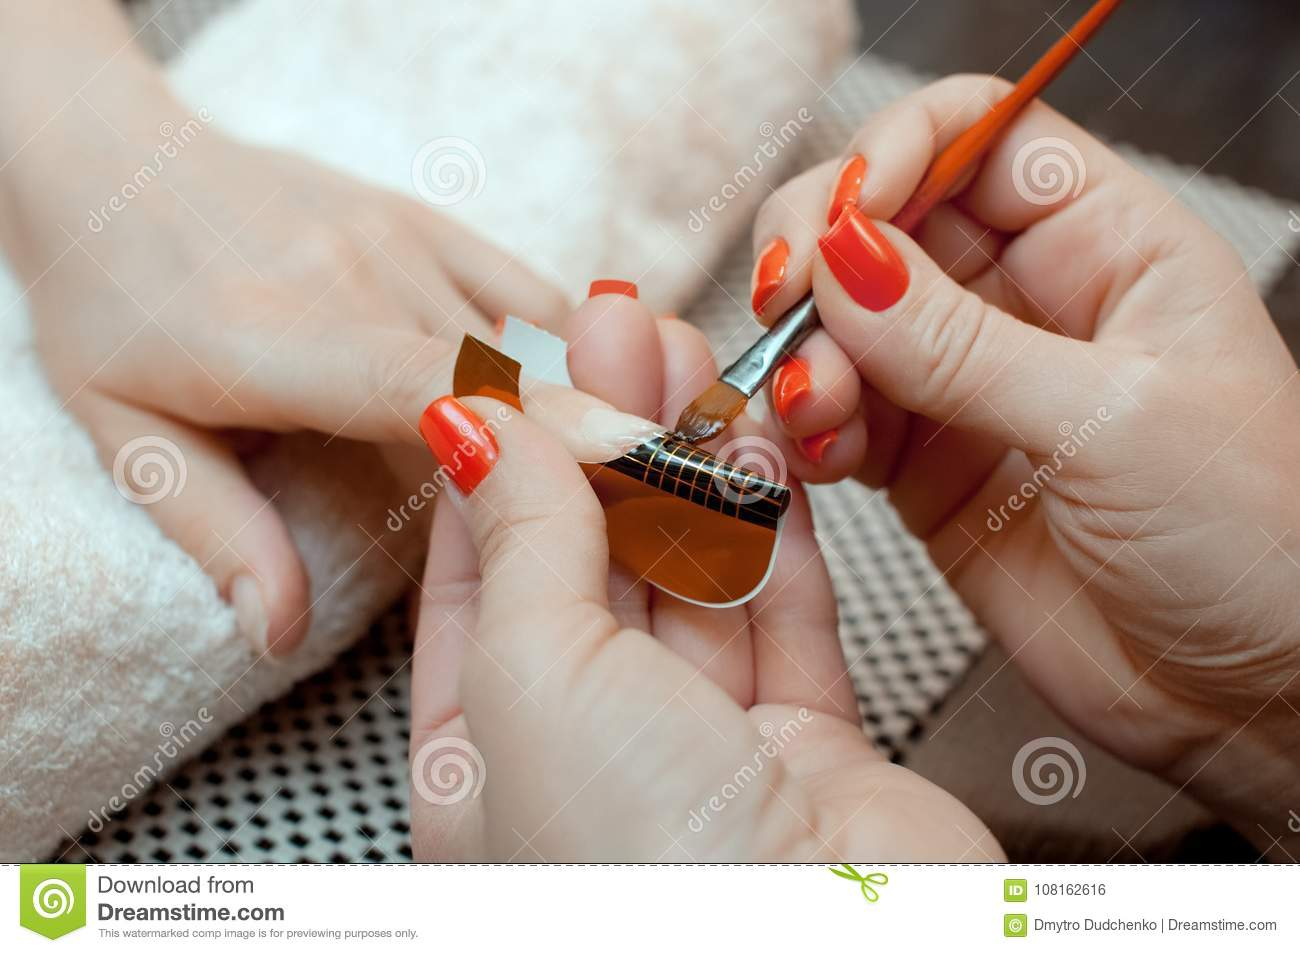 The Master Of The Nail Polish Puts A Fixative On The Finger Before ...